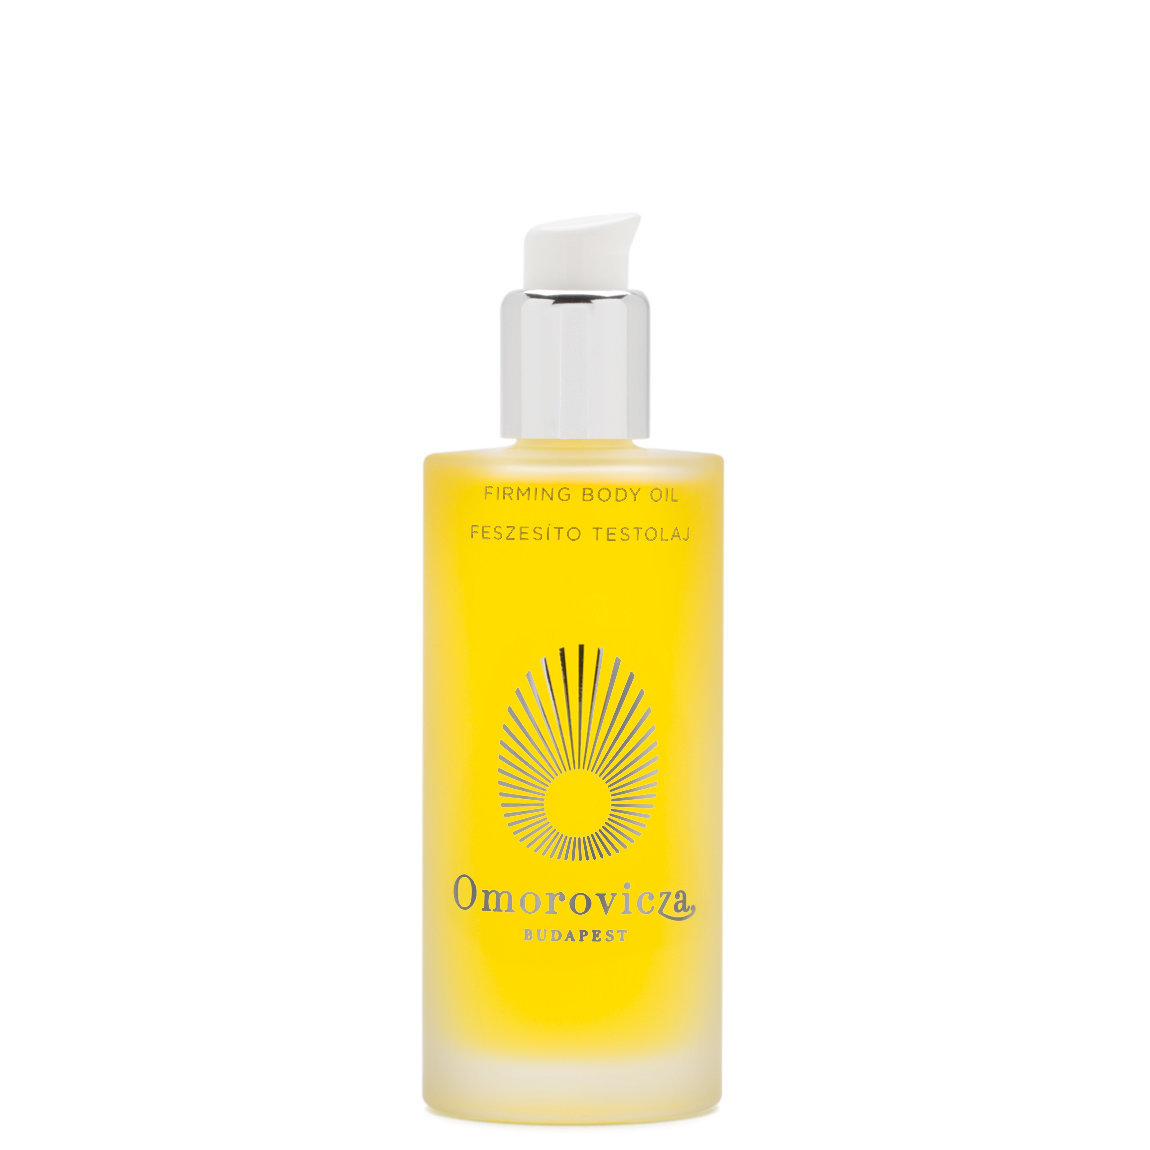 Omorovicza Firming Body Oil alternative view 1 - product swatch.